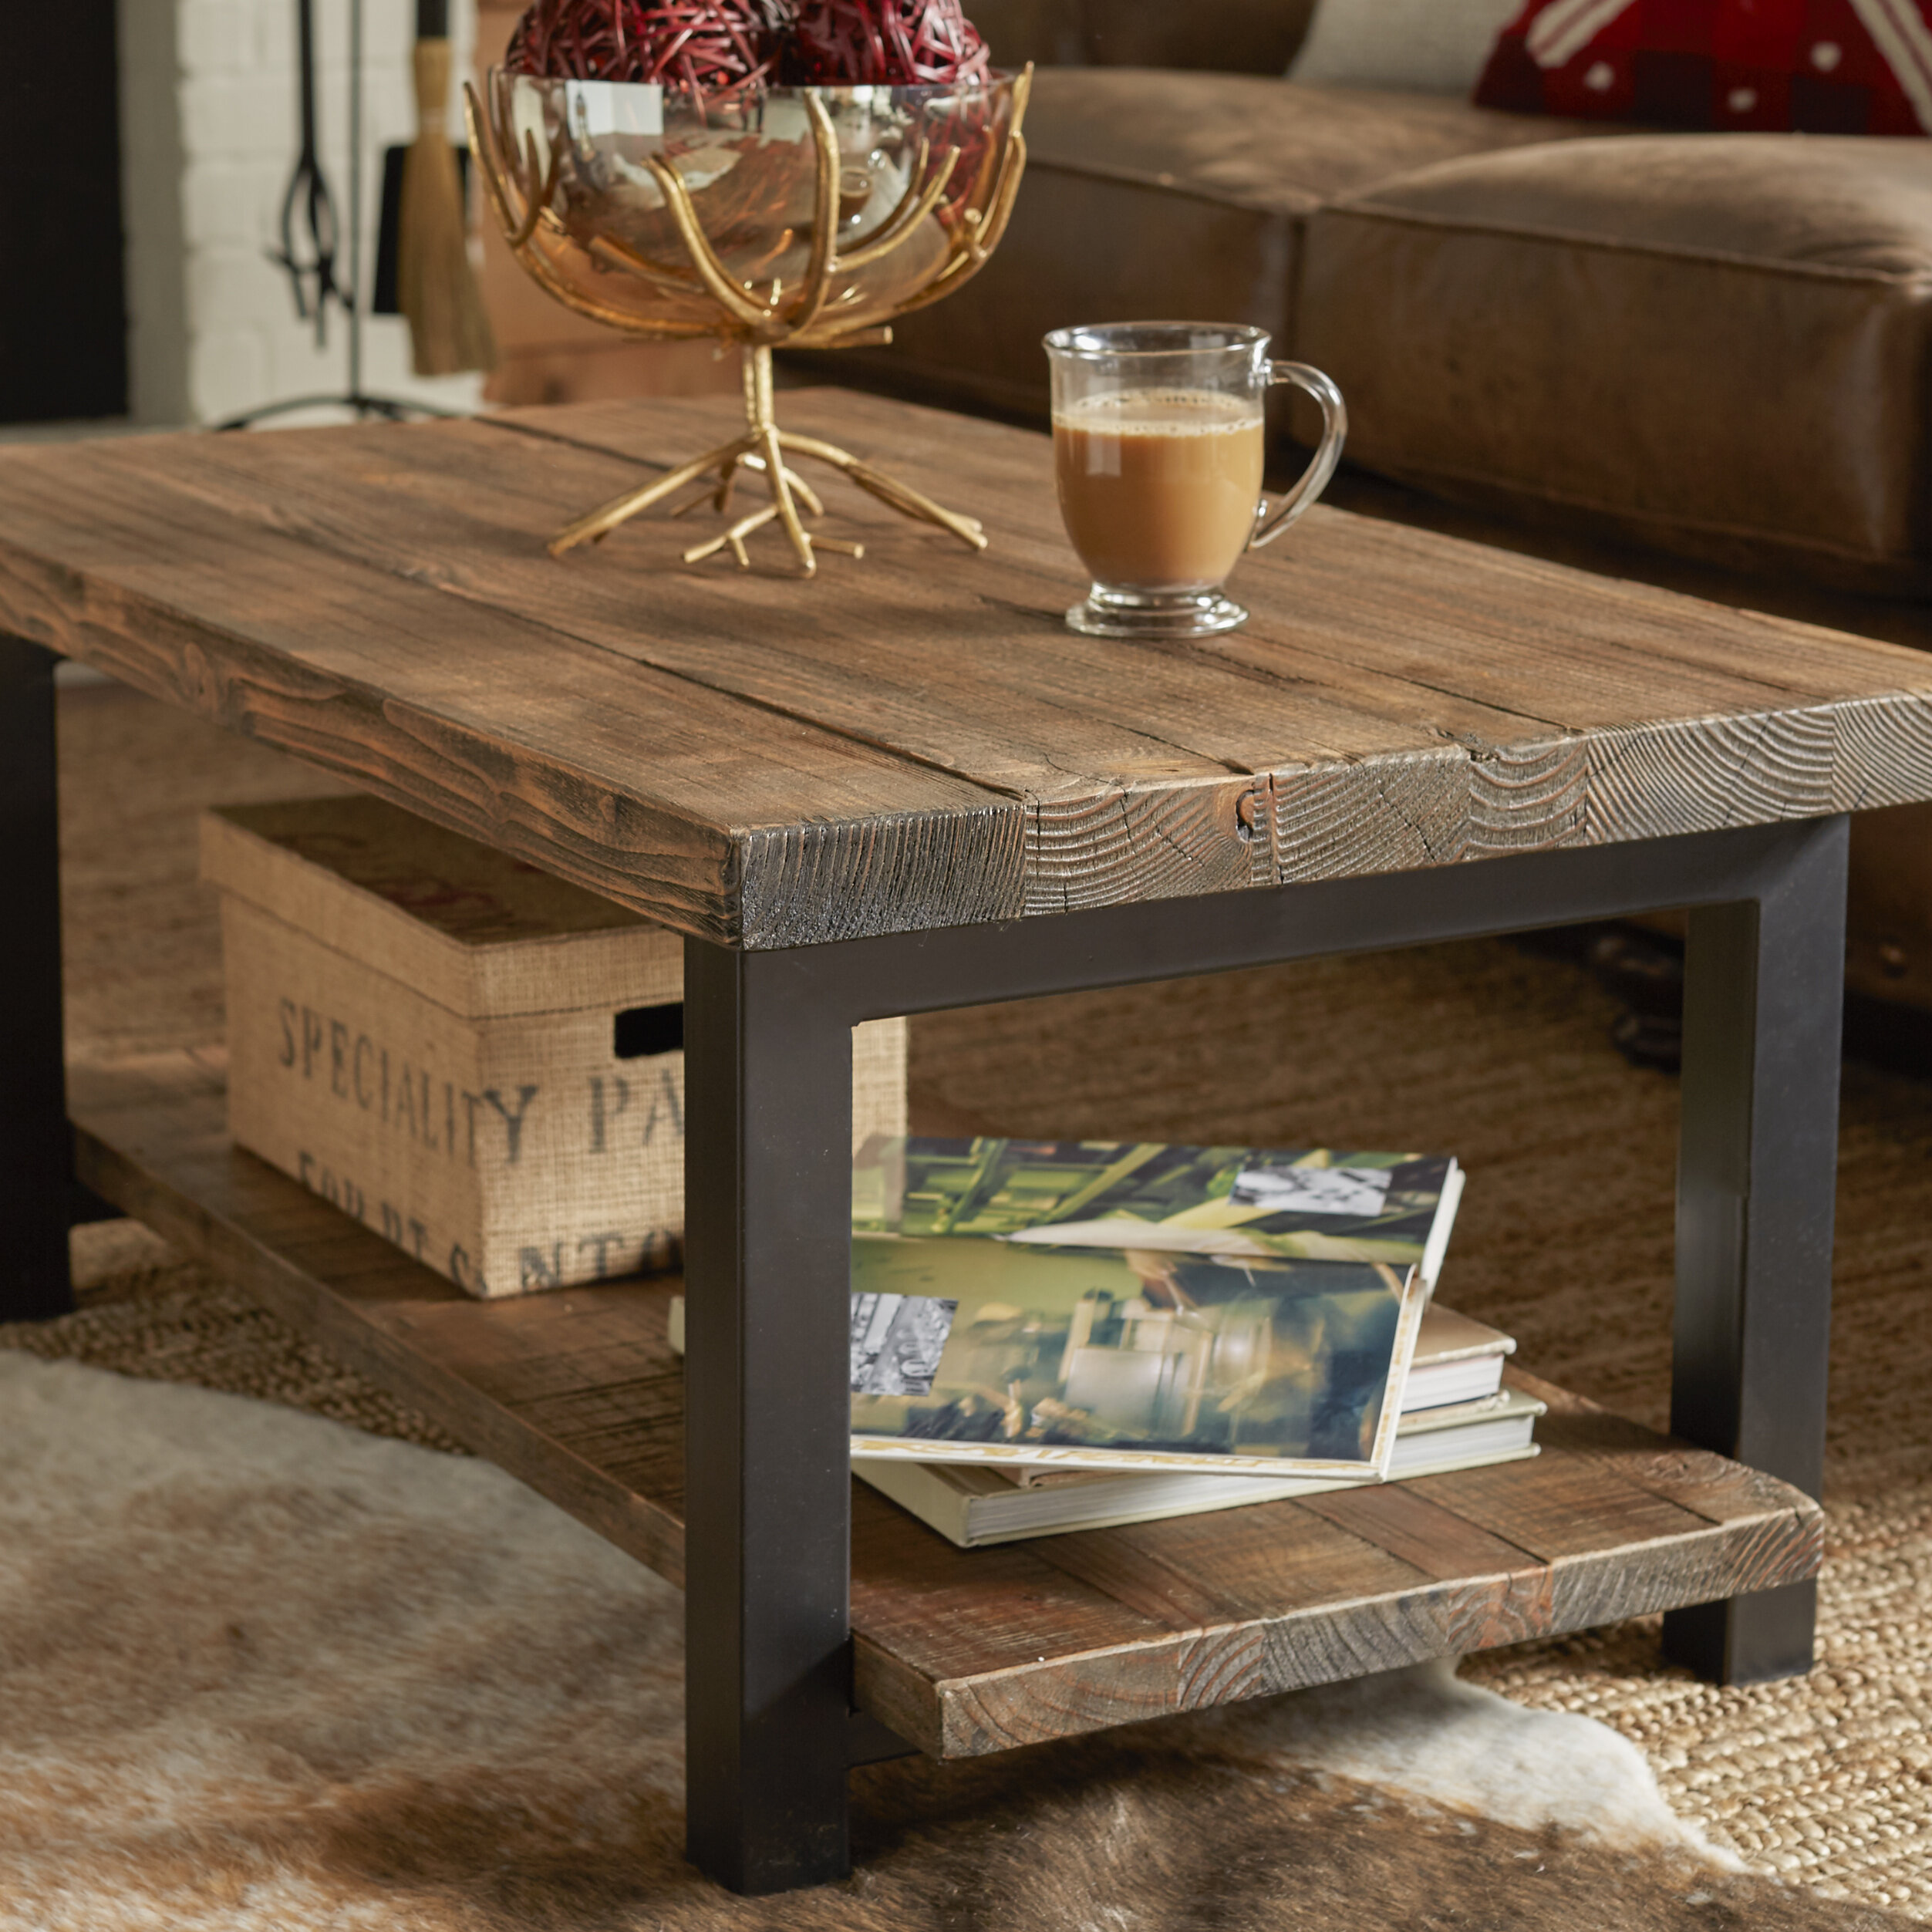 Groovy Marble And Wood Coffee Table Wayfair Lamtechconsult Wood Chair Design Ideas Lamtechconsultcom